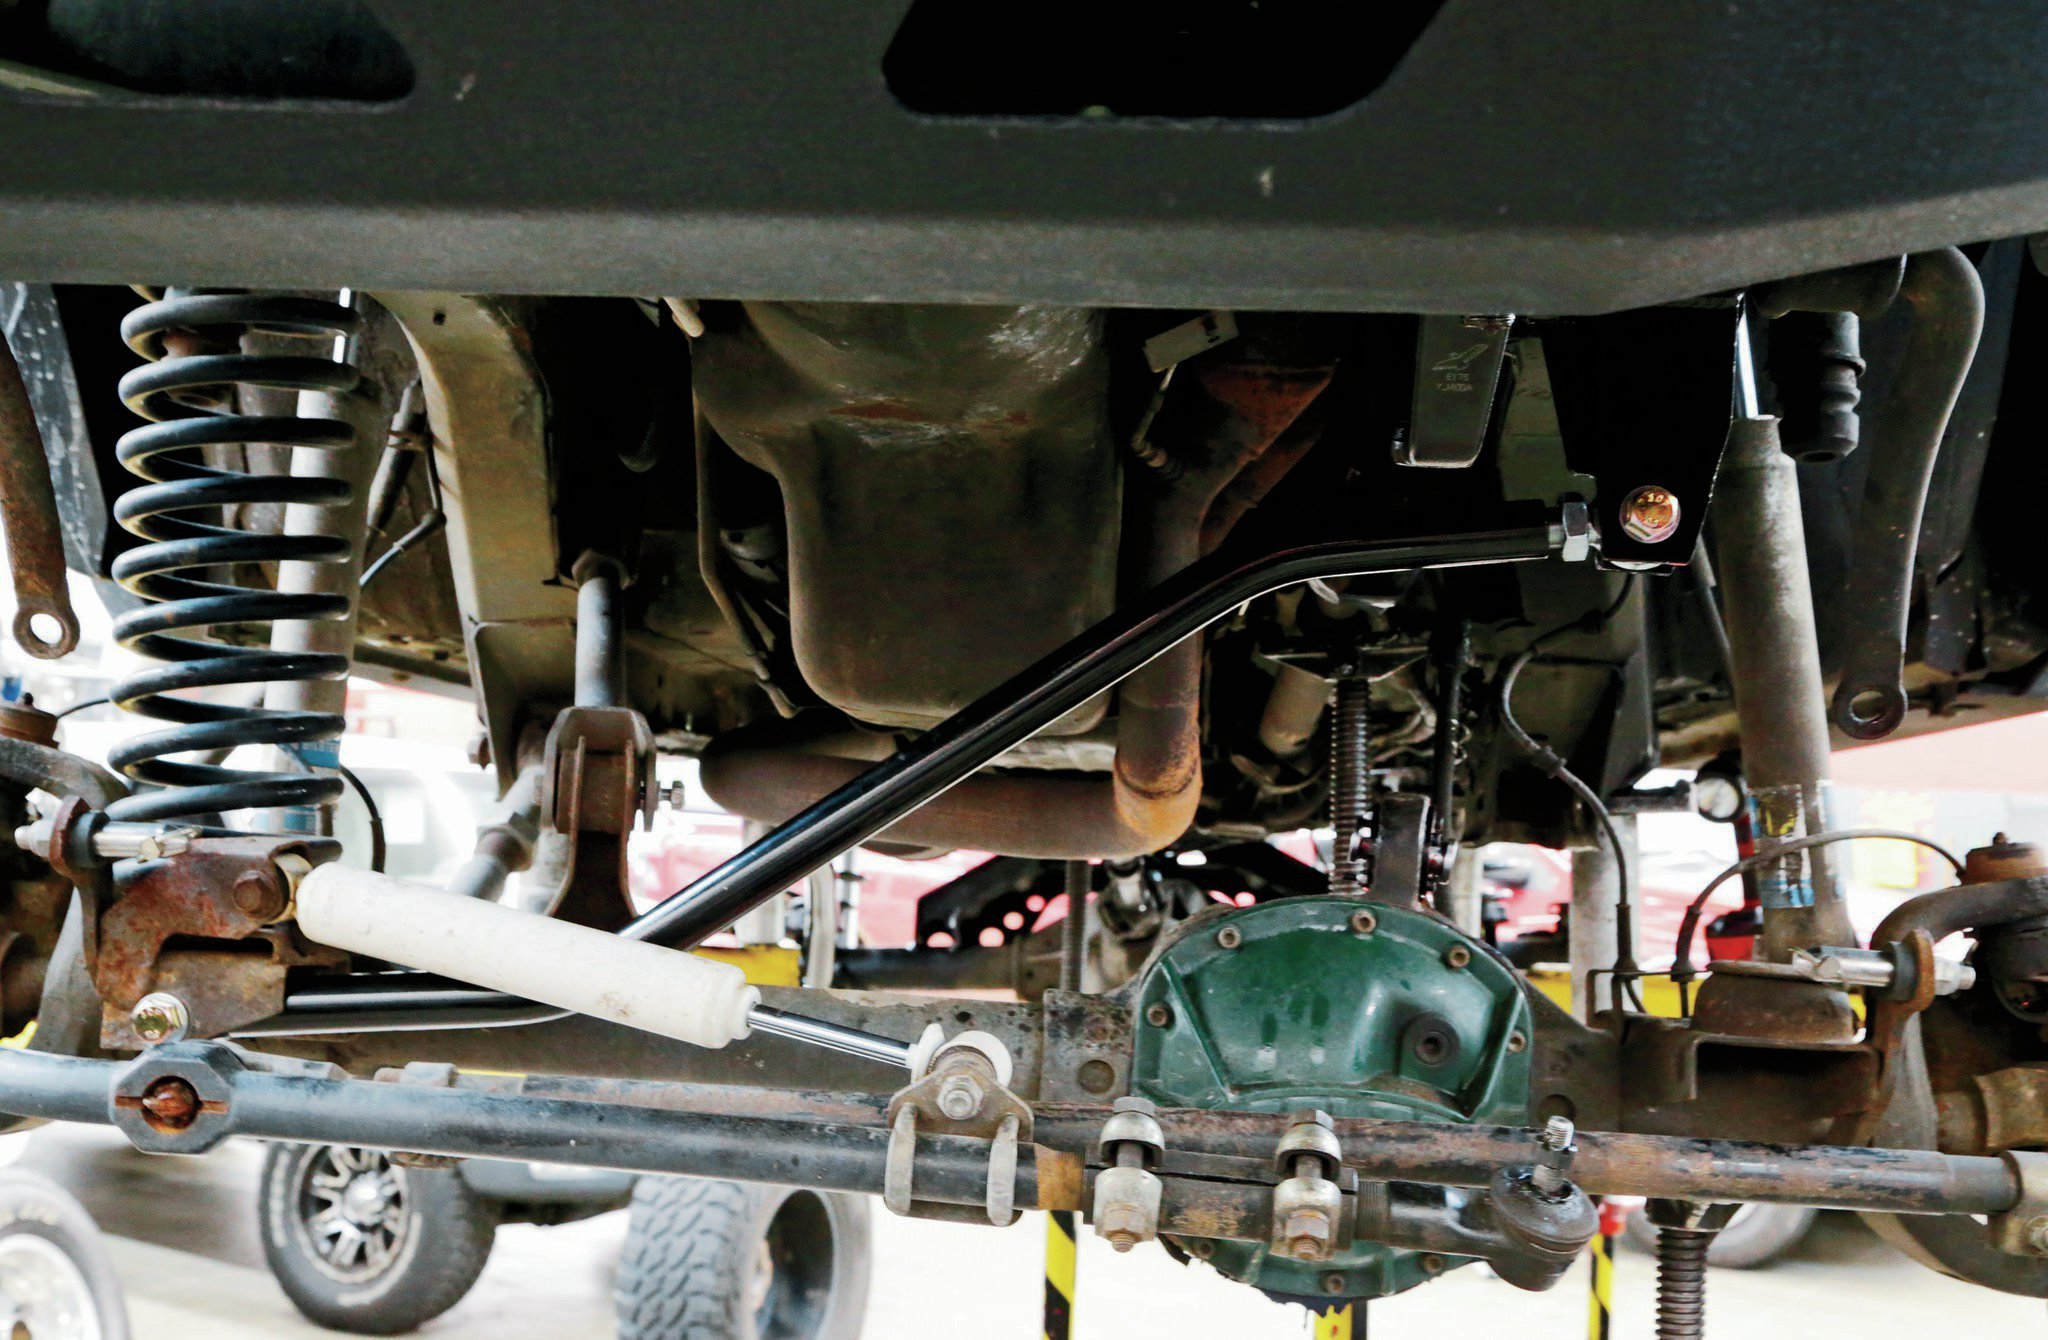 The solid-steel adjustable front track bar is formed for clearance around the stock Dana 30 front axle. Also included with the kit is a set of sway bar disconnects to allow you to get the full potential of the suspension system.